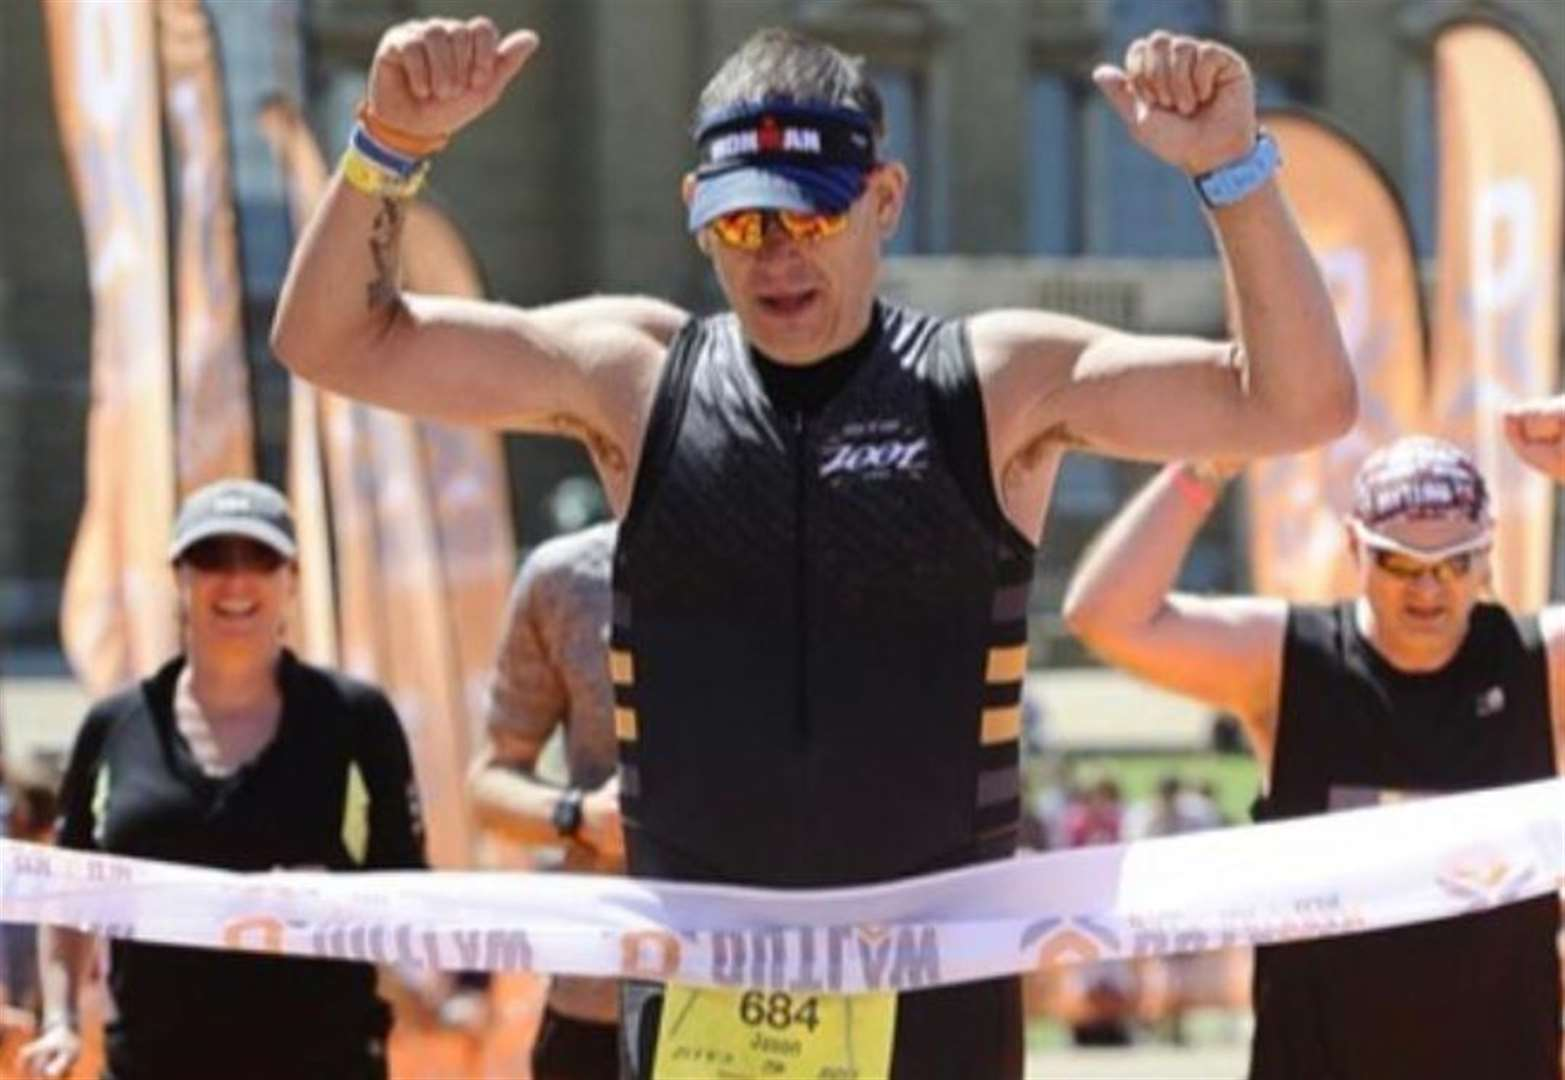 Triathletes defy the heat in Norfolk